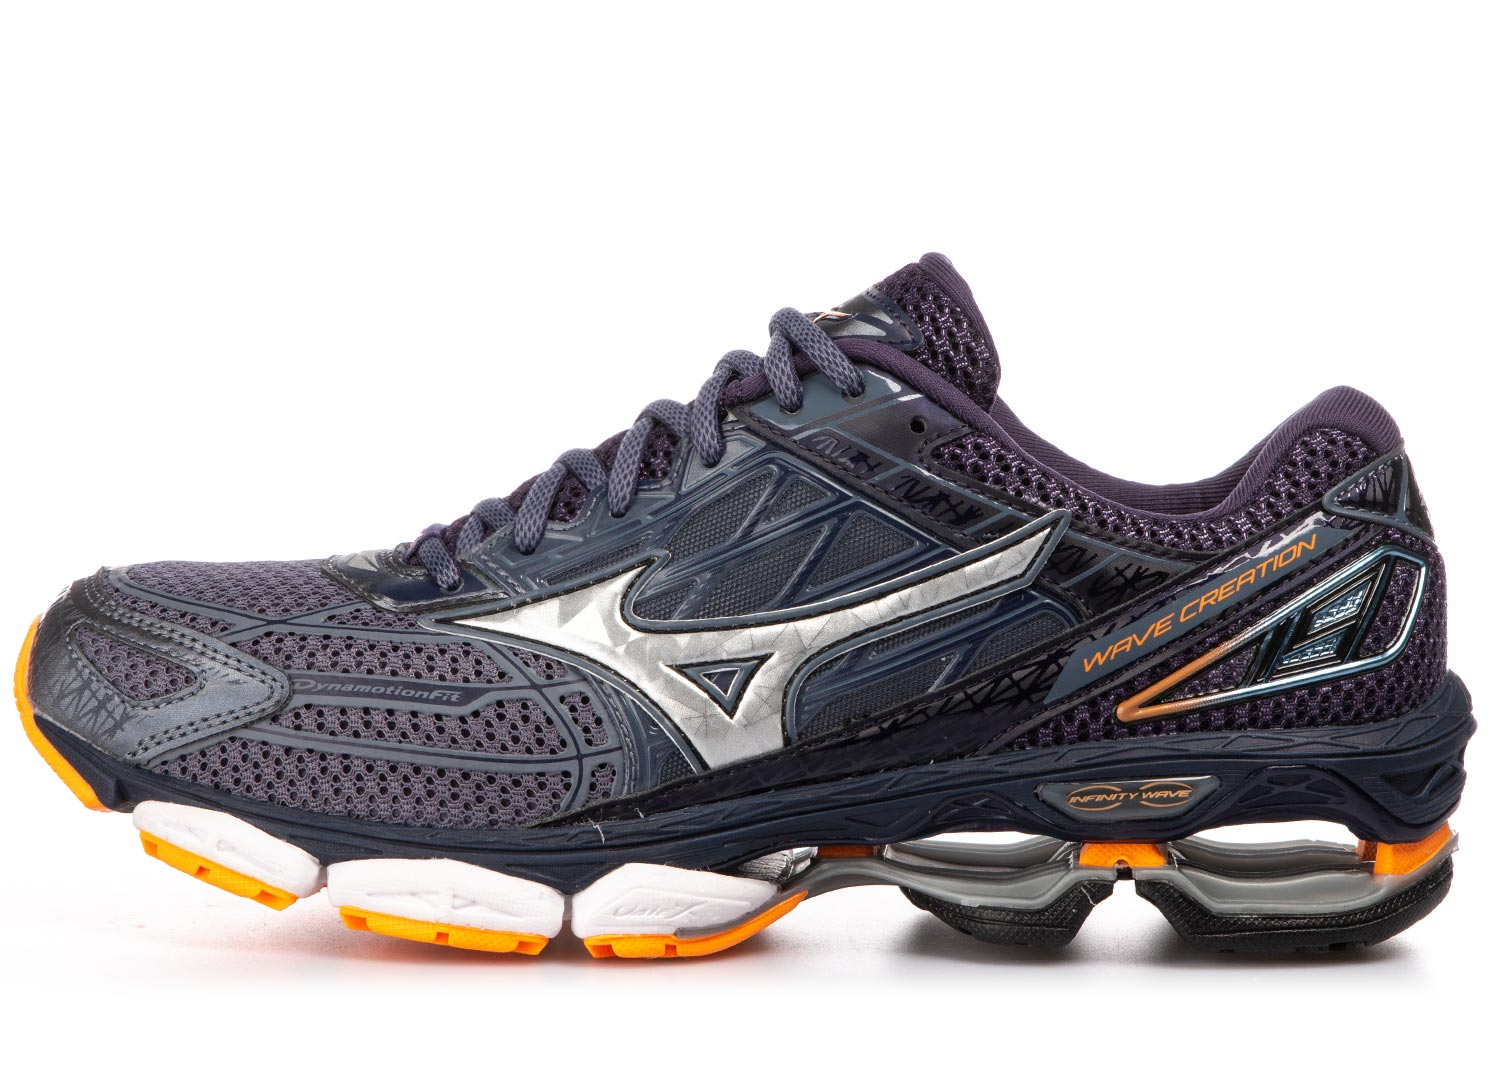 MIZUNO WAVE CREATION 19 J1GR1701-01 Ανθρακί